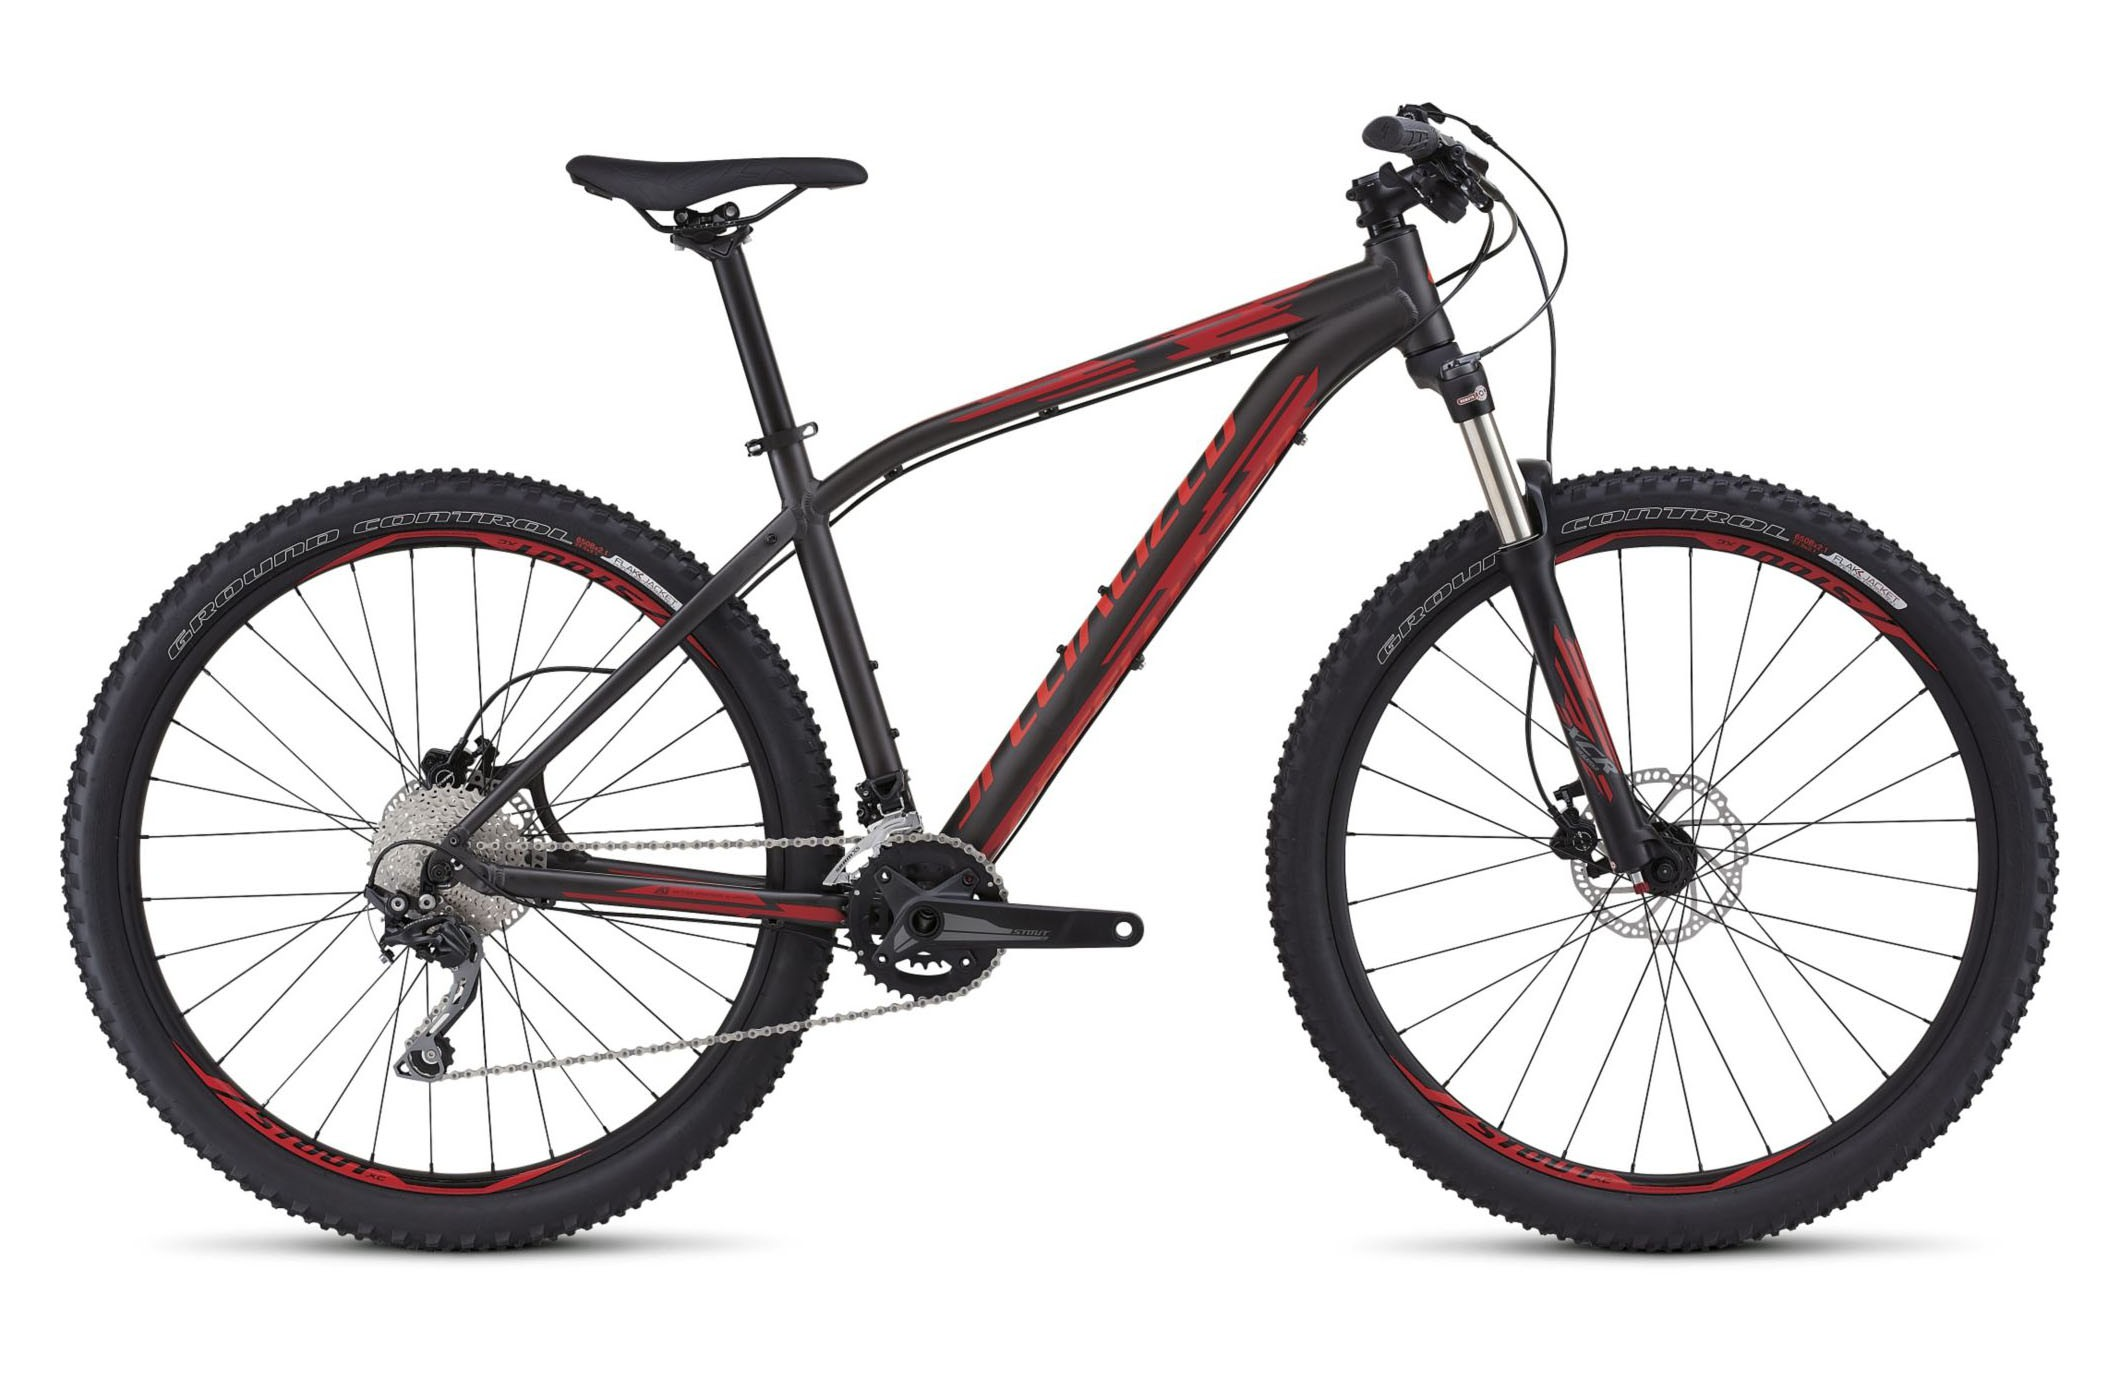 Горный велосипед Specialized Pitch Expert 650b (2016)